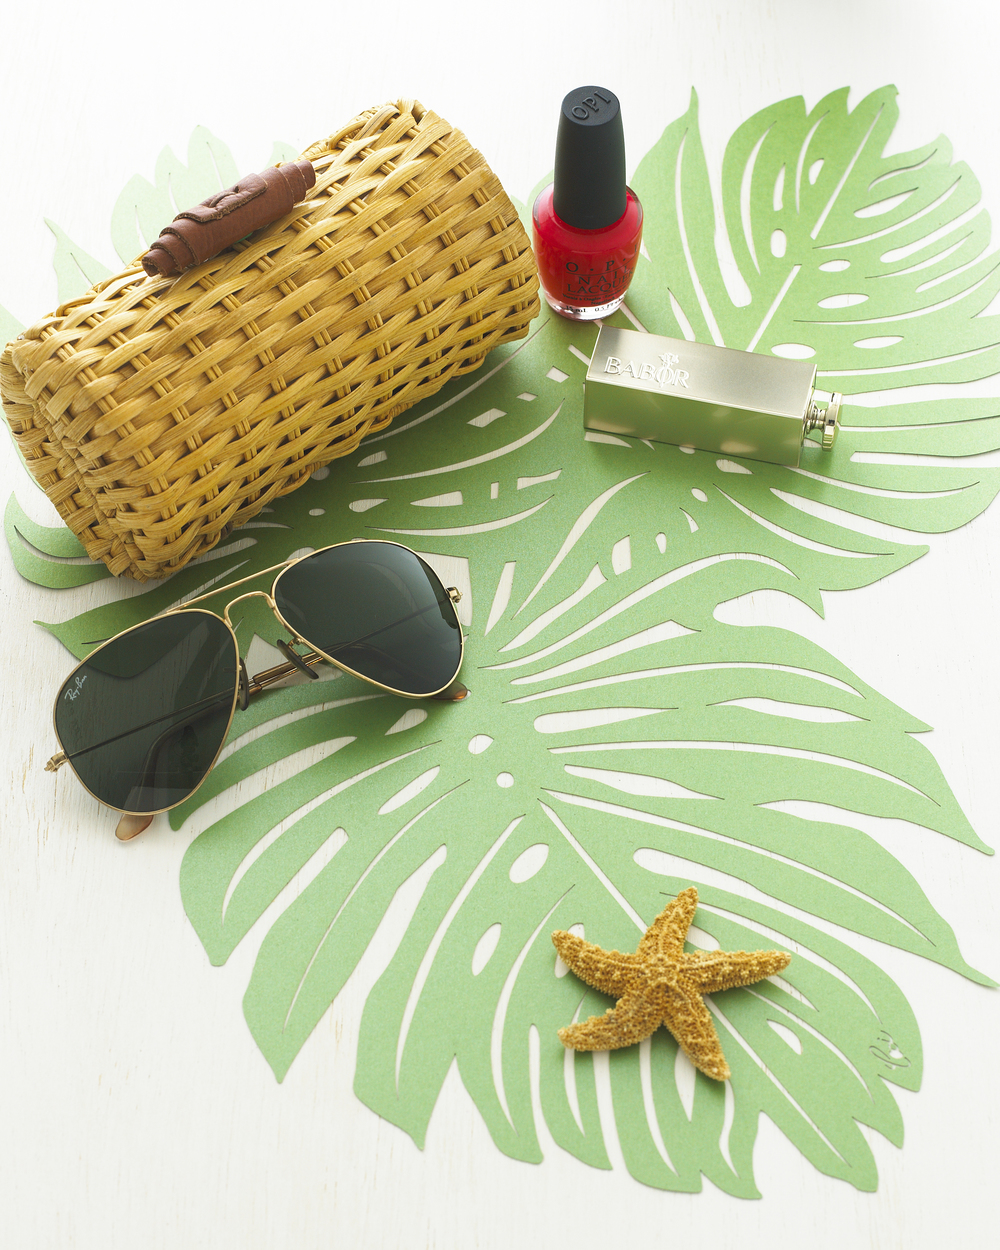 Ceci_New_York_Entertaining_Tabletop_Placemats_Palm_Leaf_Green_Style_Design_Lasercut_Entertaining_Lifestyle_1.jpg